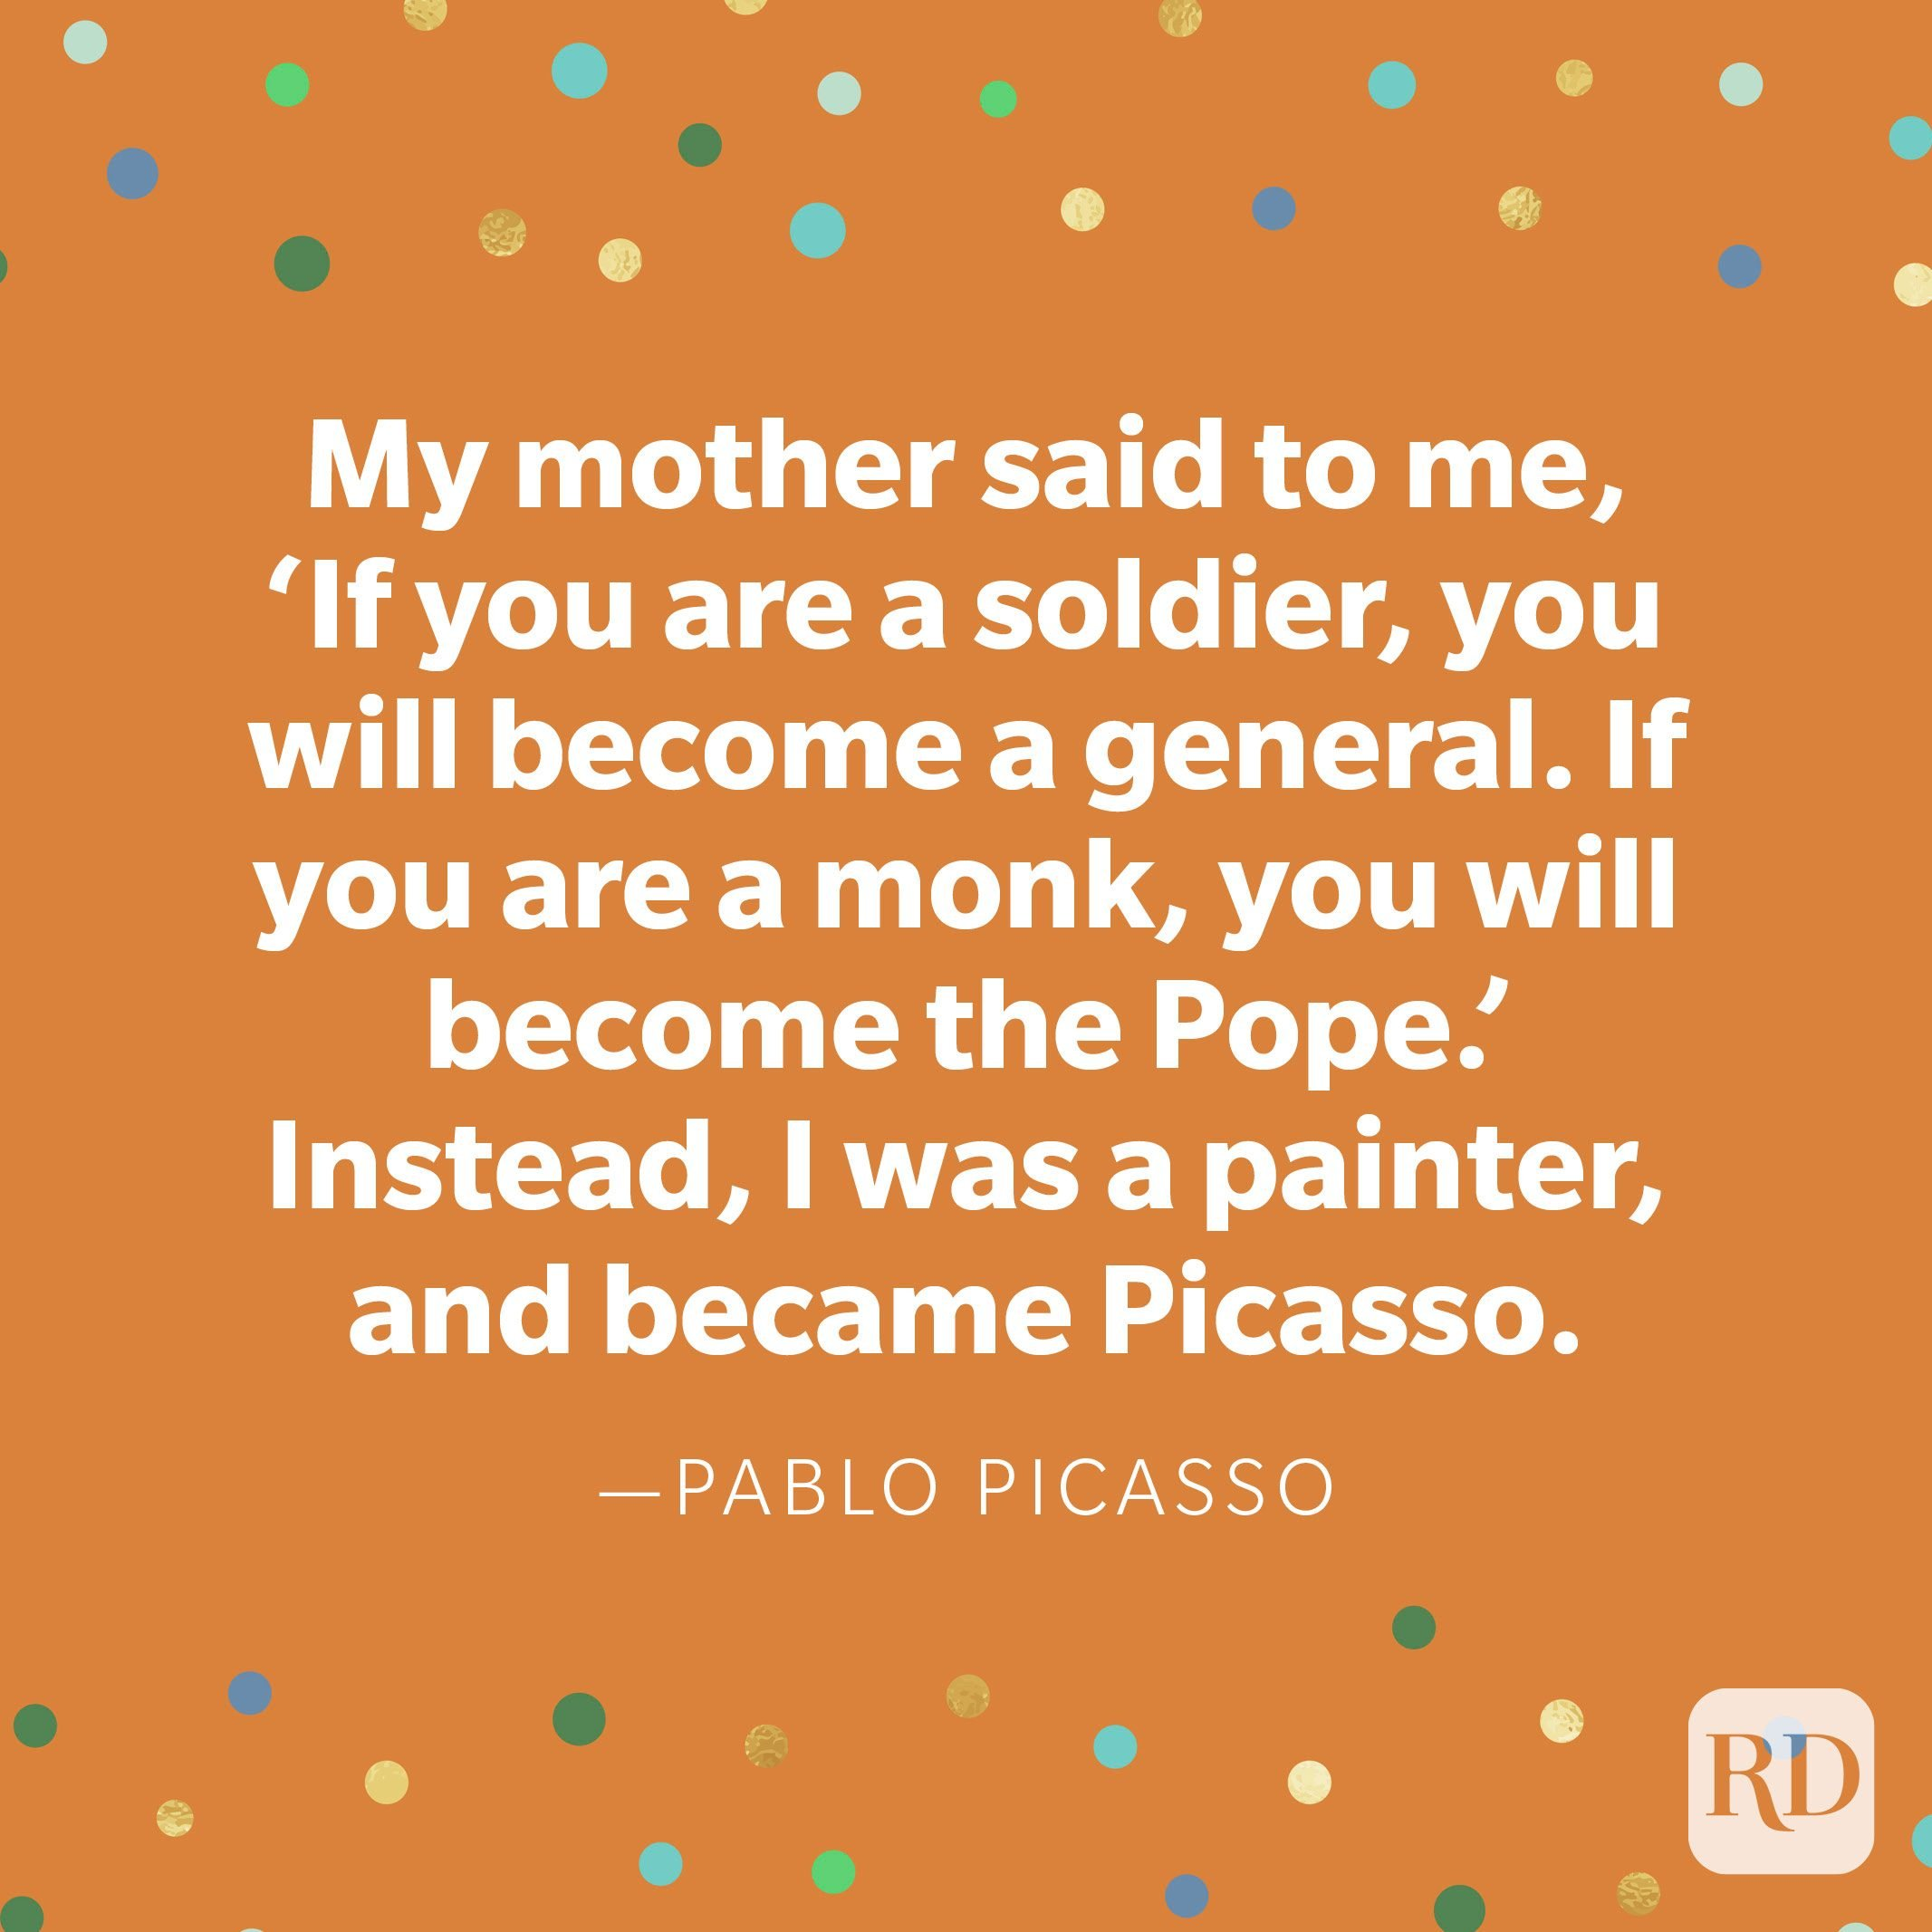 """My mother said to me, 'If you are a soldier, you will become a general. If you are a monk, you will become the Pope.' Instead, I was a painter, and became Picasso."" —Pablo Picasso."